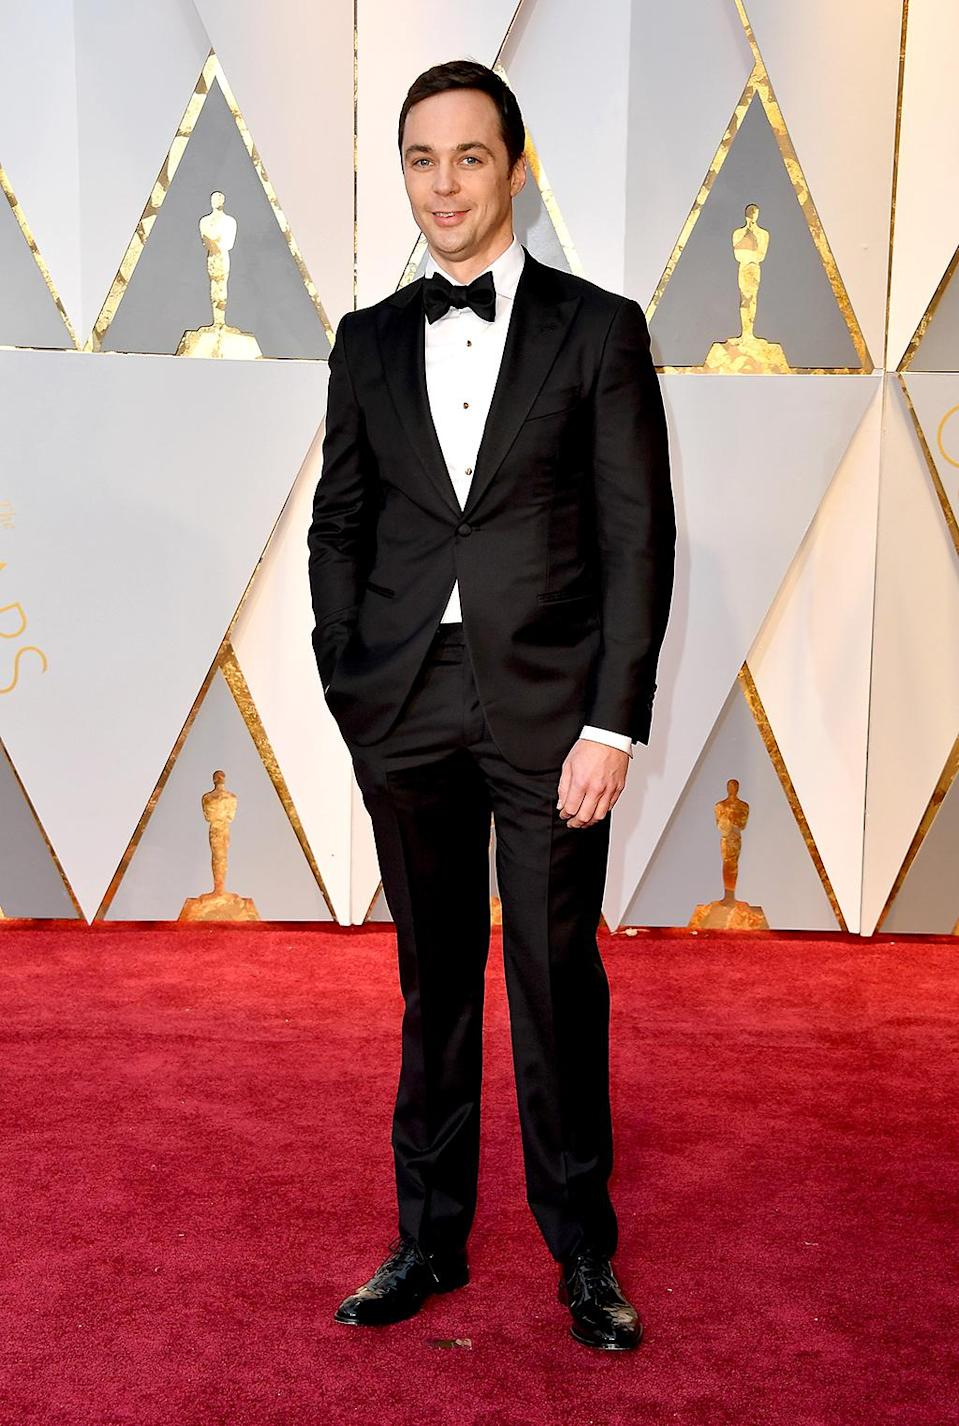 <p>Actor Jim Parsons attends the 89th Annual Academy Awards at Hollywood & Highland Center on February 26, 2017 in Hollywood, California. (Photo by Steve Granitz/WireImage) </p>